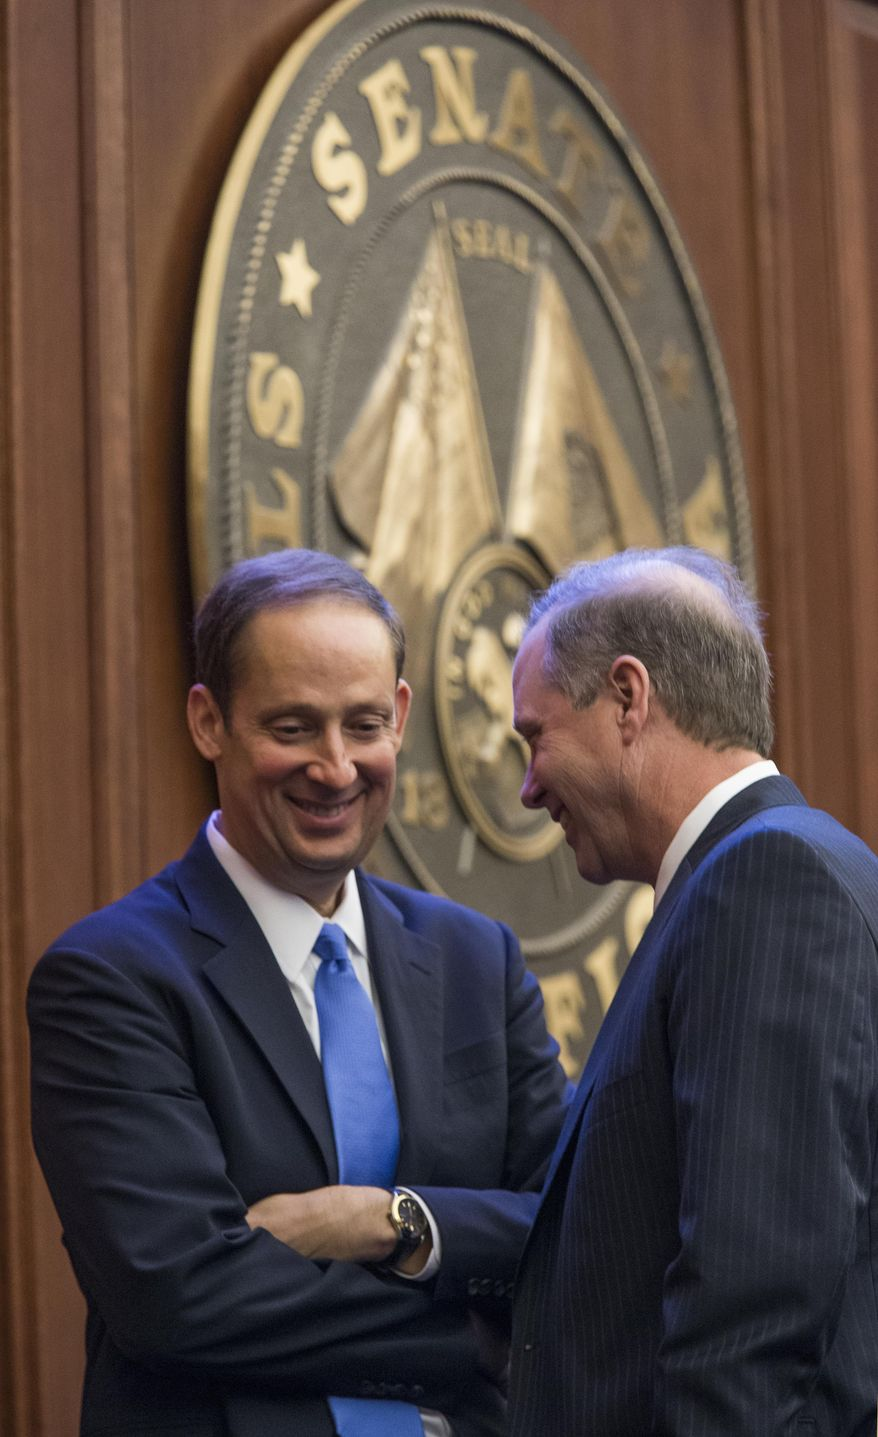 Senate President Joe Negron, left, and Sen. Wilton Simpson, R-Spring Hill, talks at the president's rostrum during the final hours of the legislative session Monday, May 8, 2017, at the Florida Capitol in Tallahassee, Fla. (AP Photo/Mark Wallheiser)